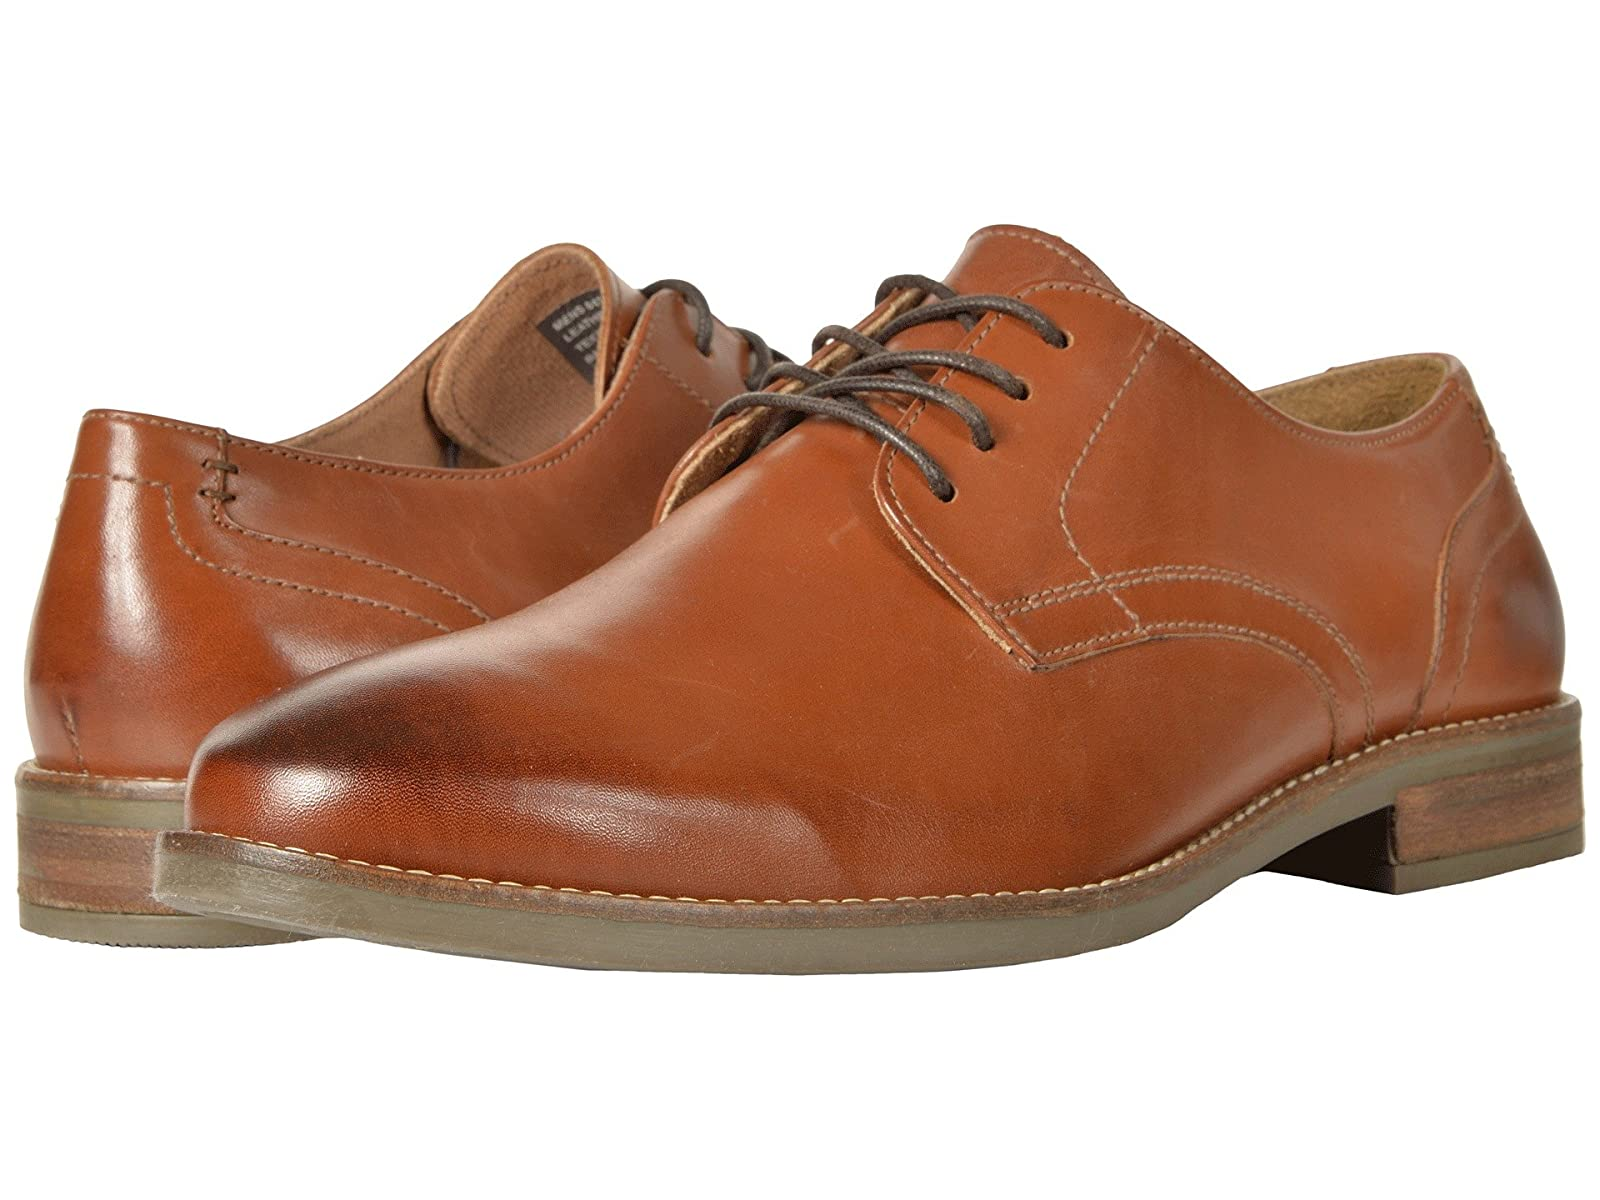 Nunn Bush Clyde Plain Toe OxfordAtmospheric grades have affordable shoes